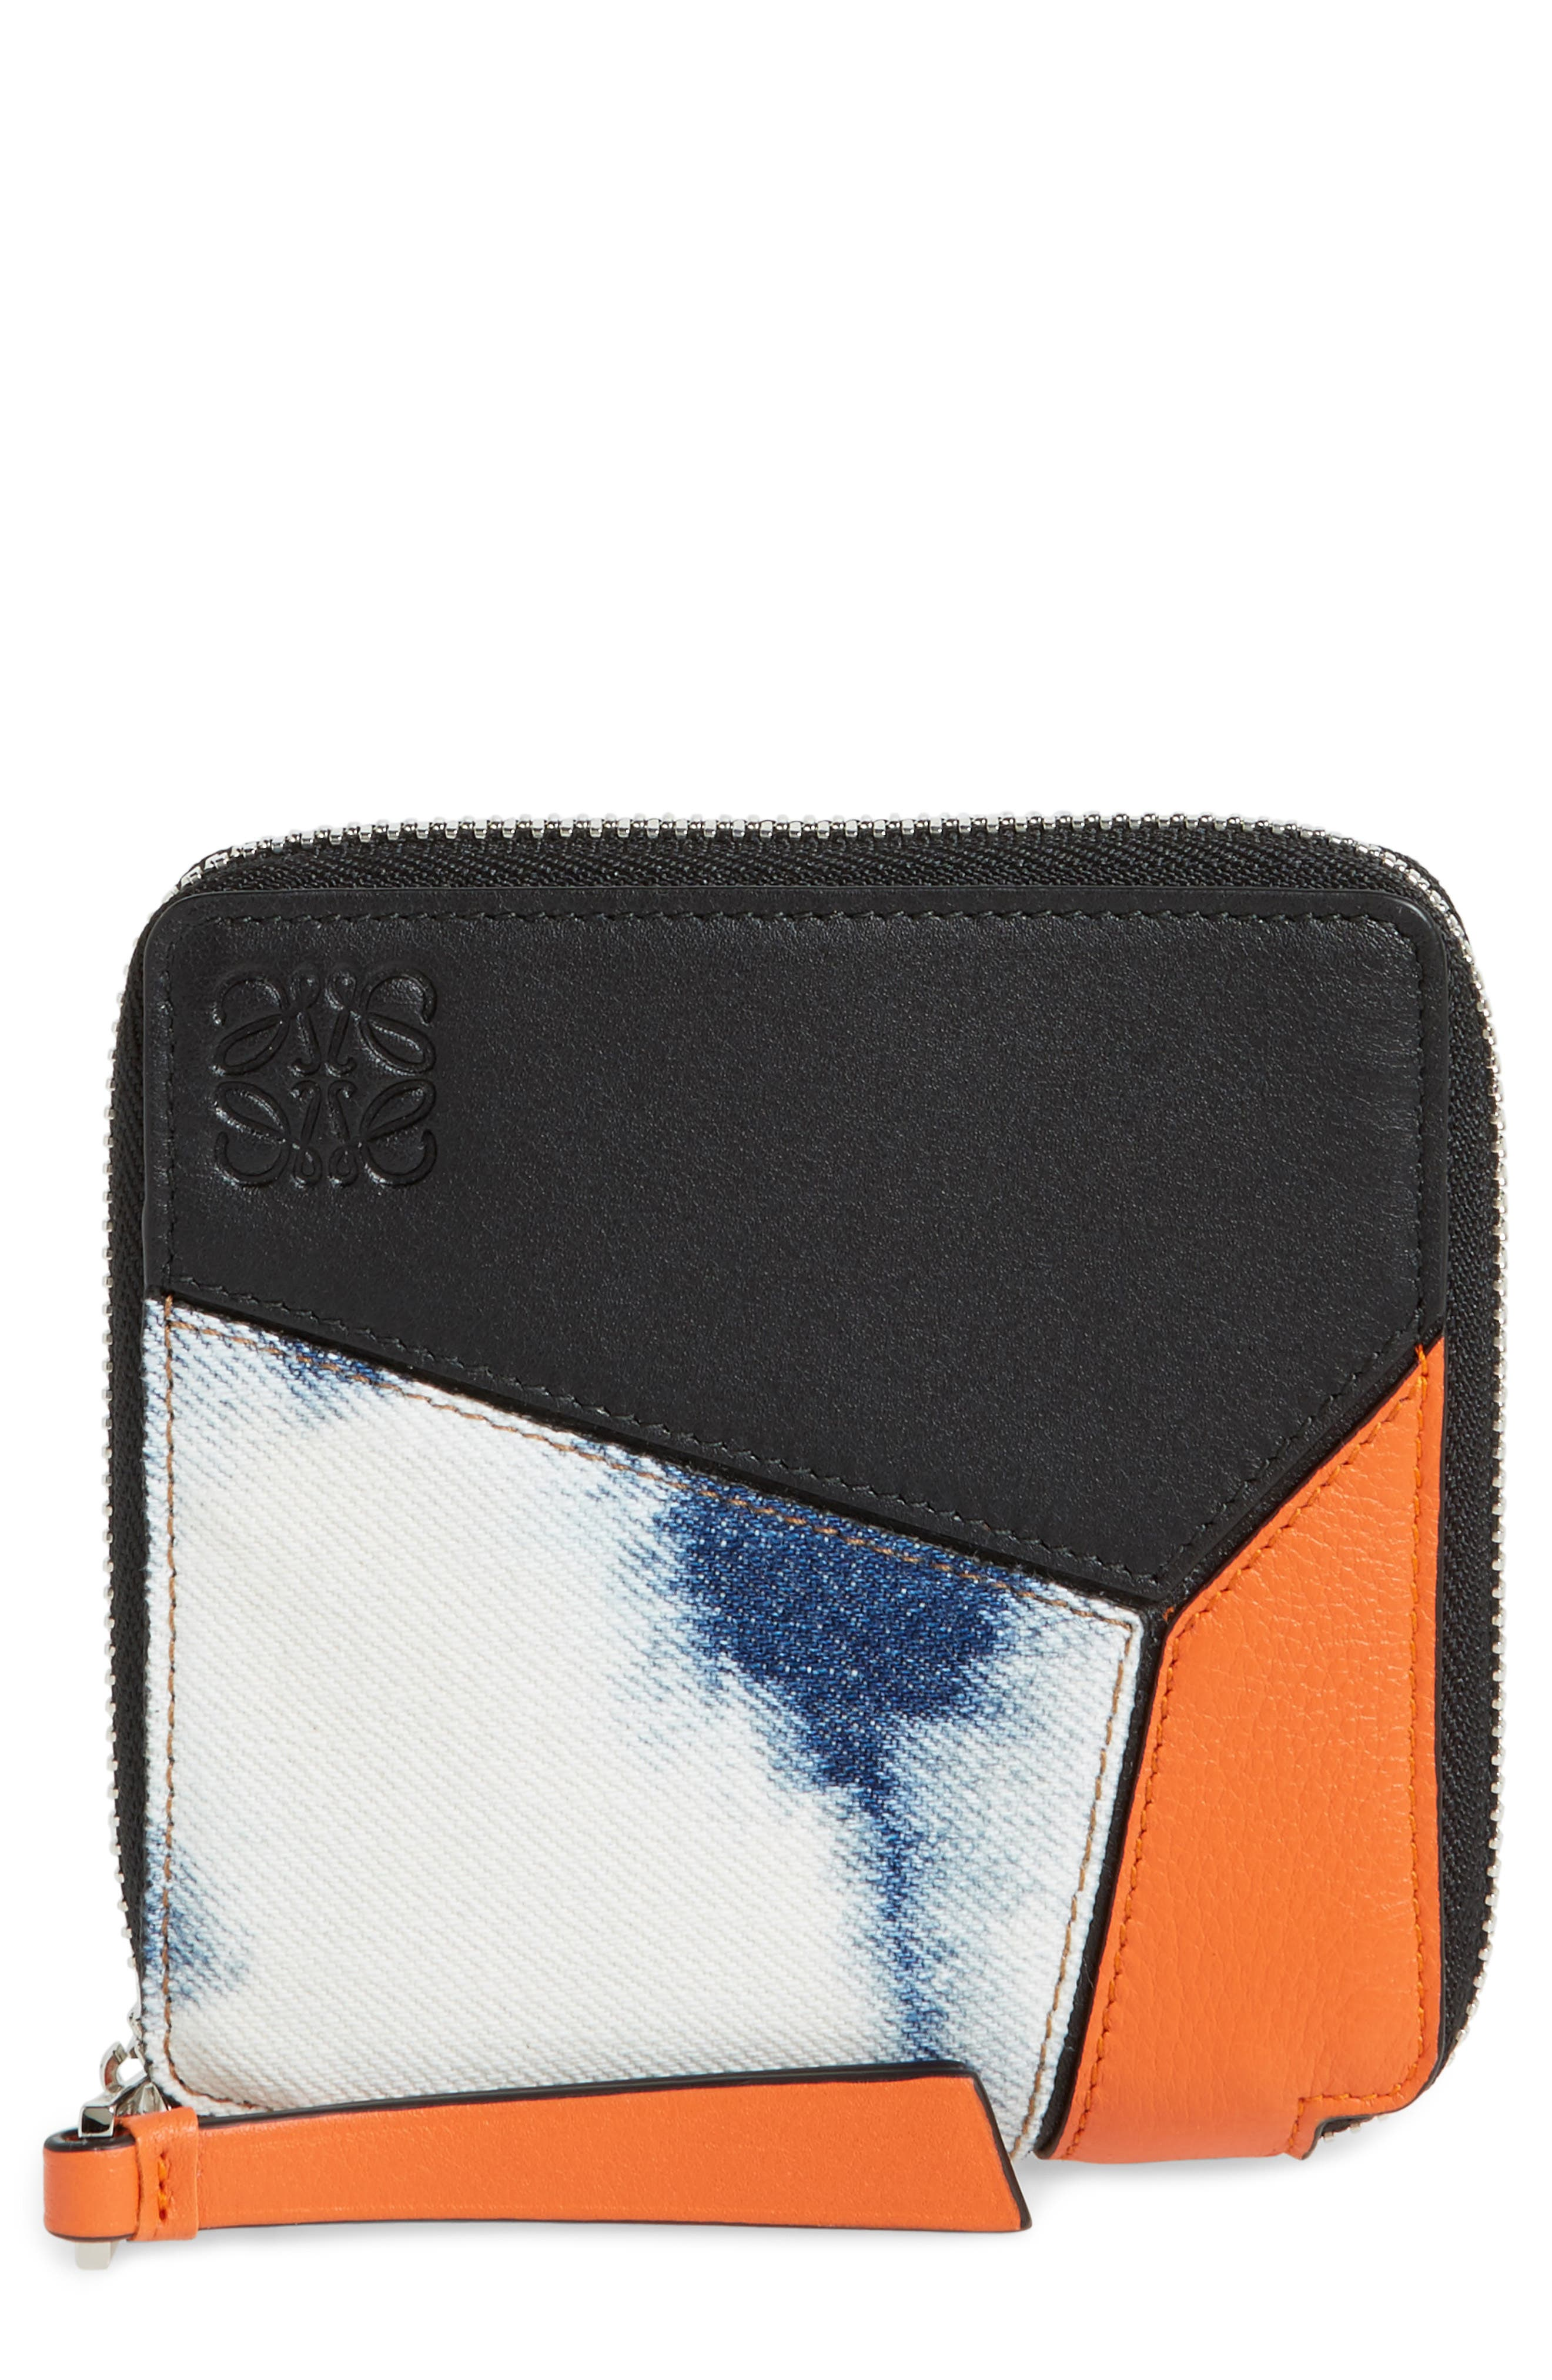 Main Image - Loewe Small Puzzle Leather Zip Around French Wallet